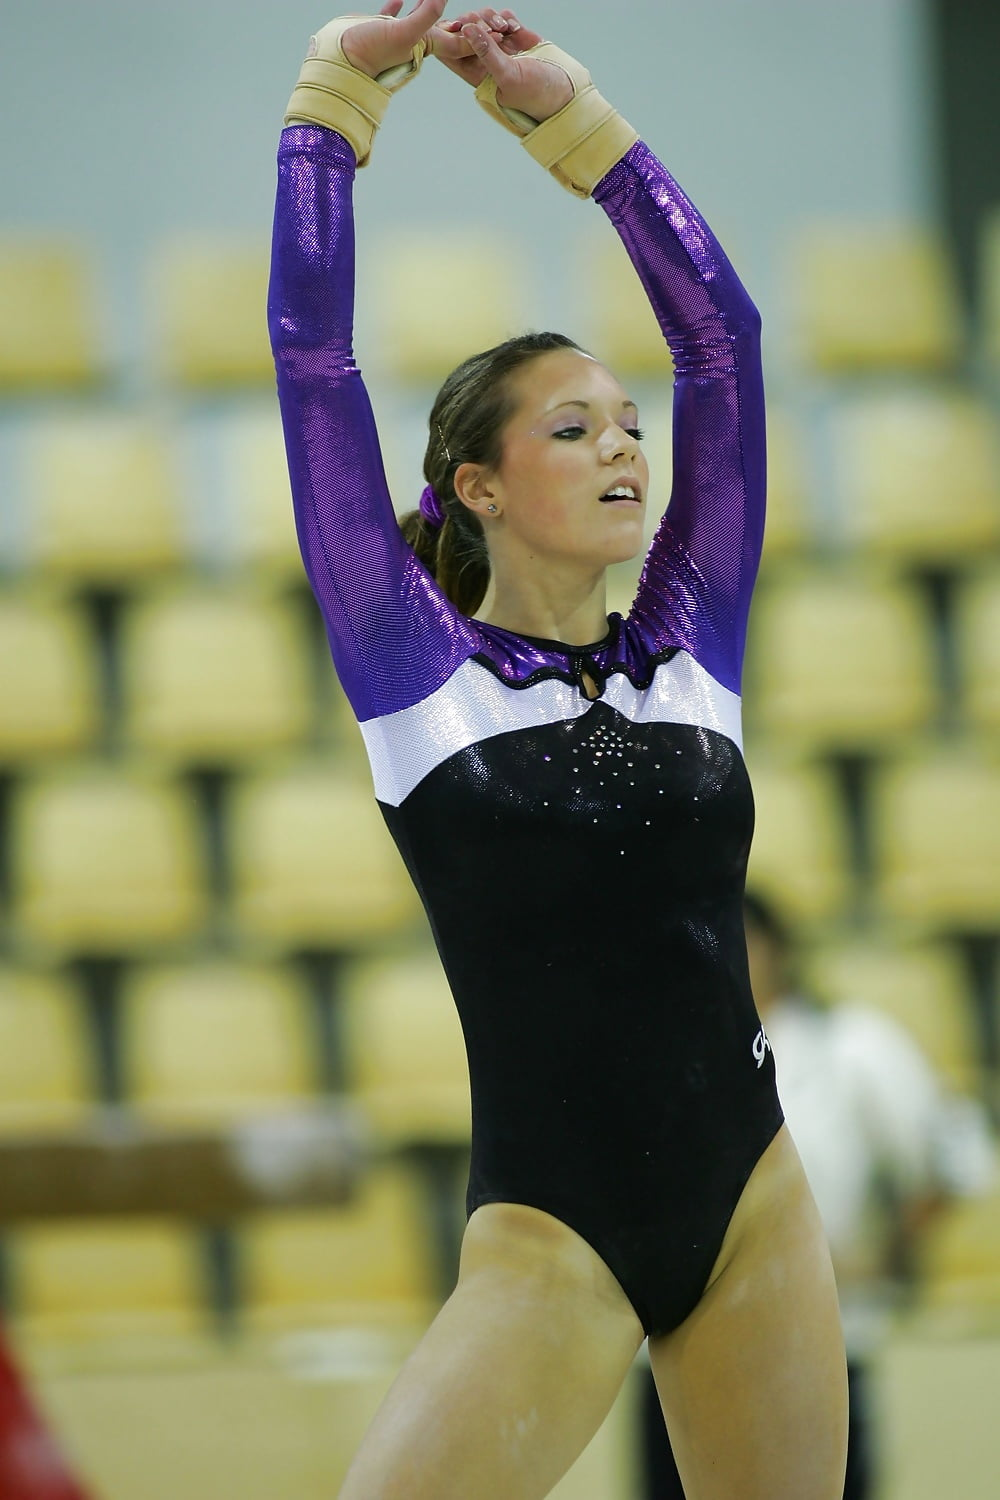 Candid gymnast and cameltoe pictures